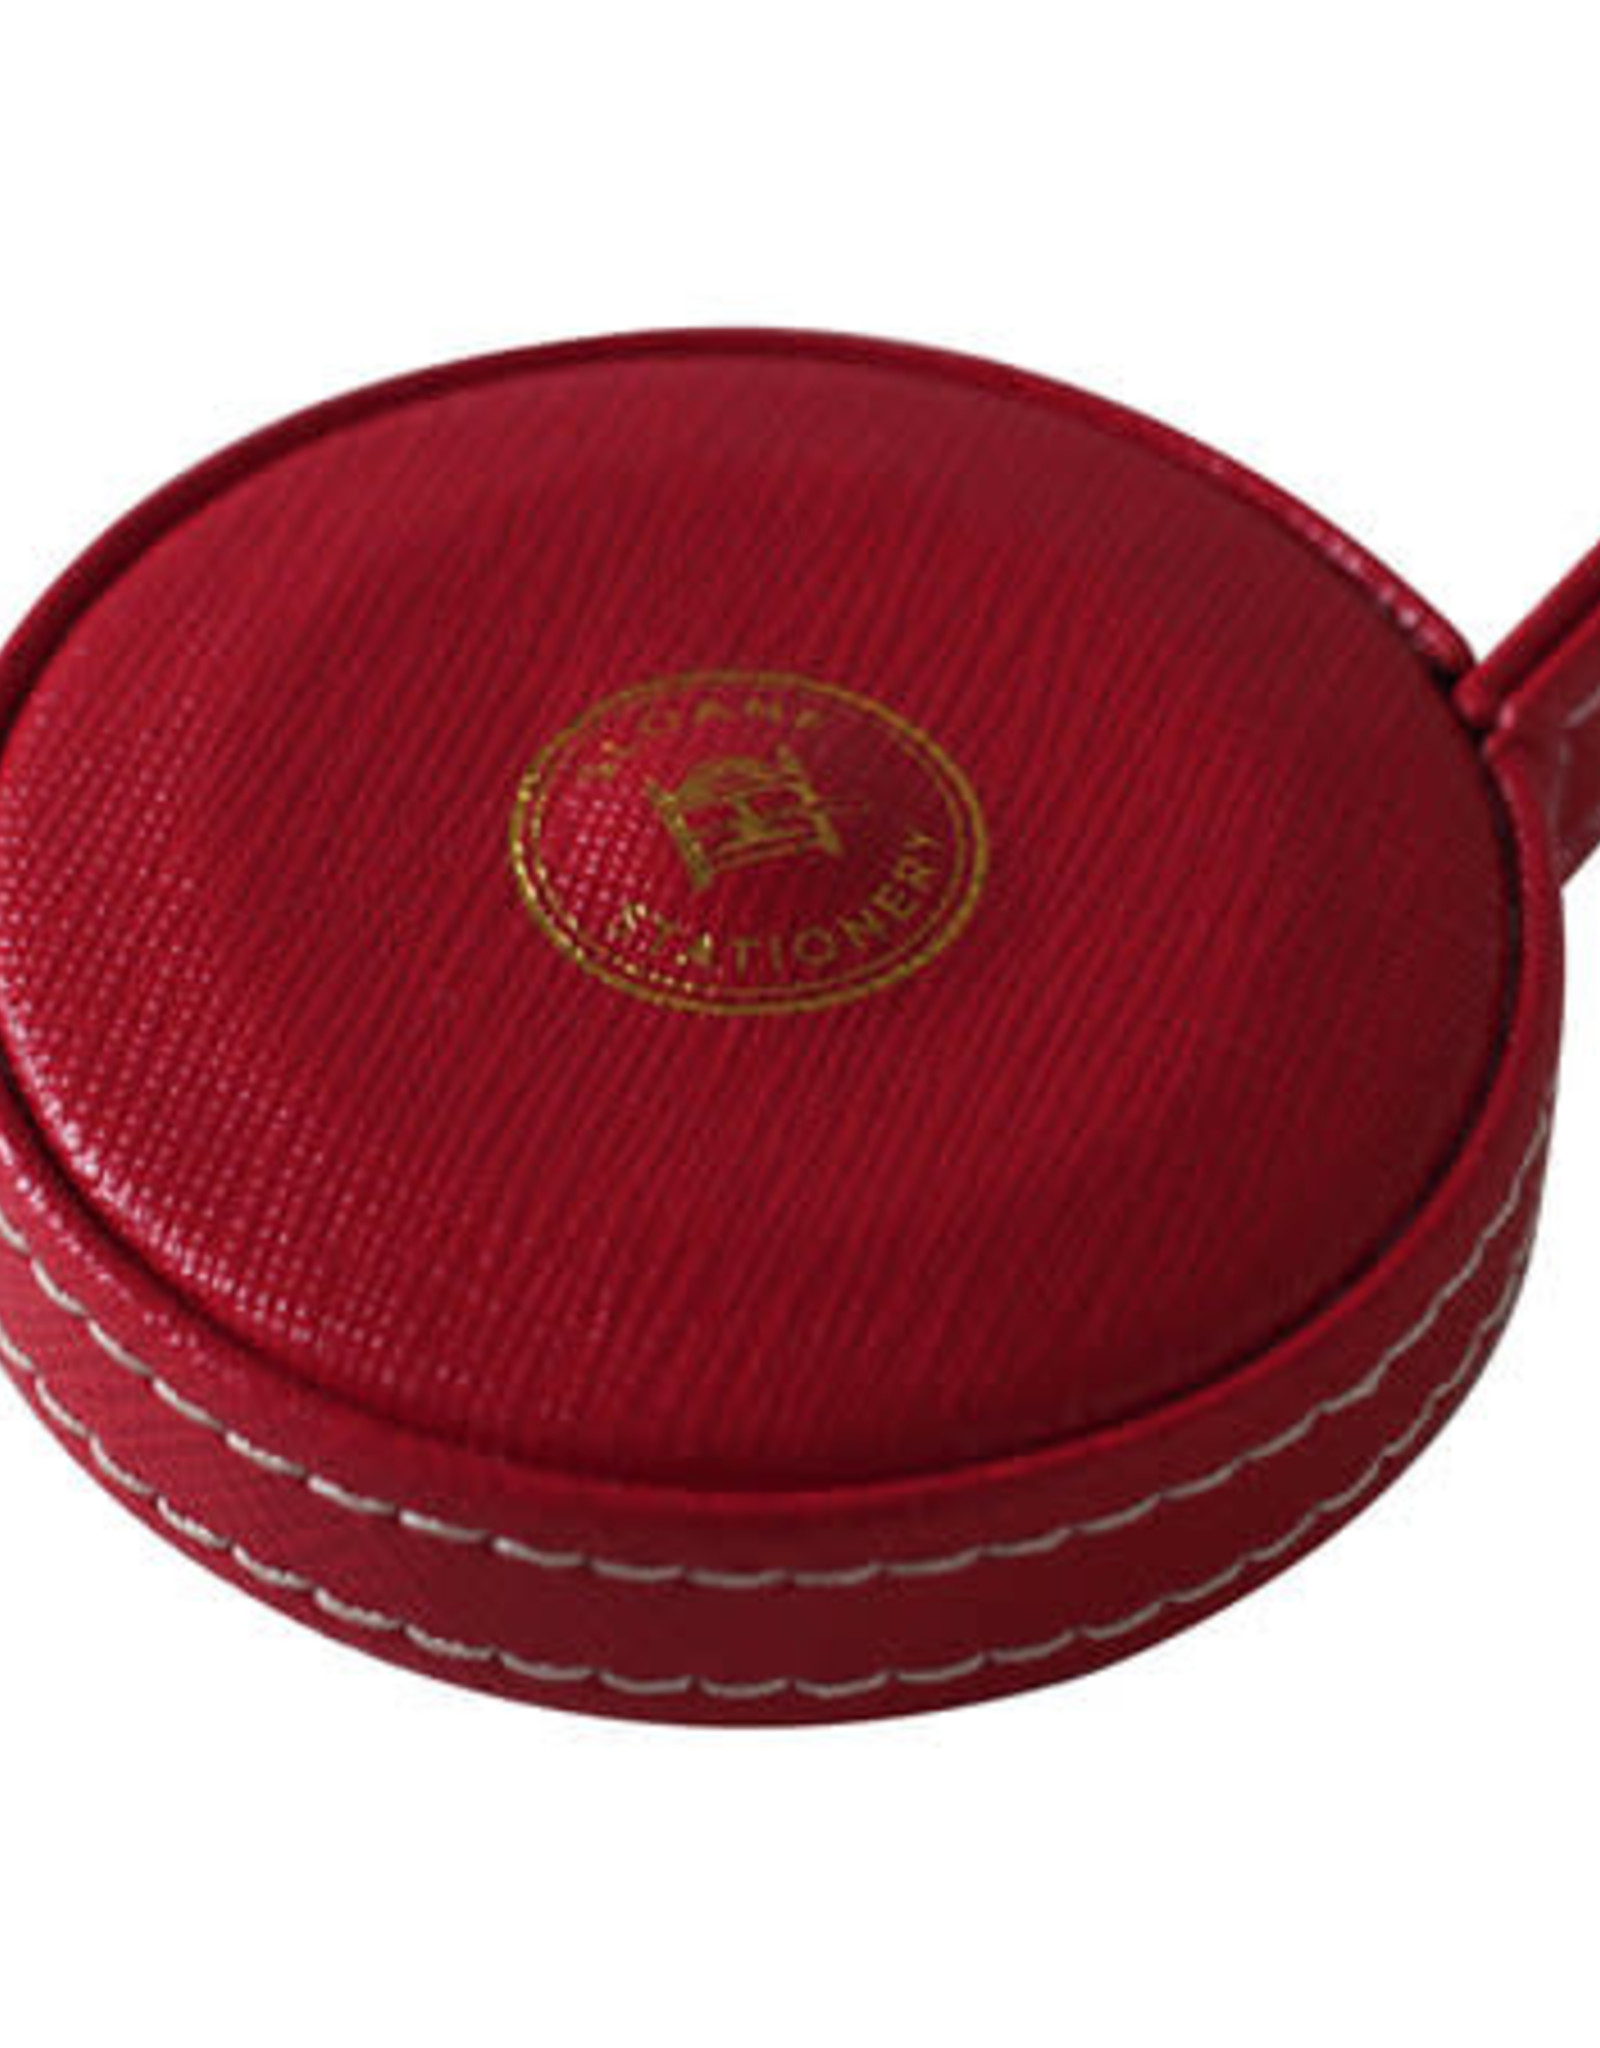 "Sloane Stationery ltd Red Vegan Leather Covered Measuring Tape ""the Measure of Things"""